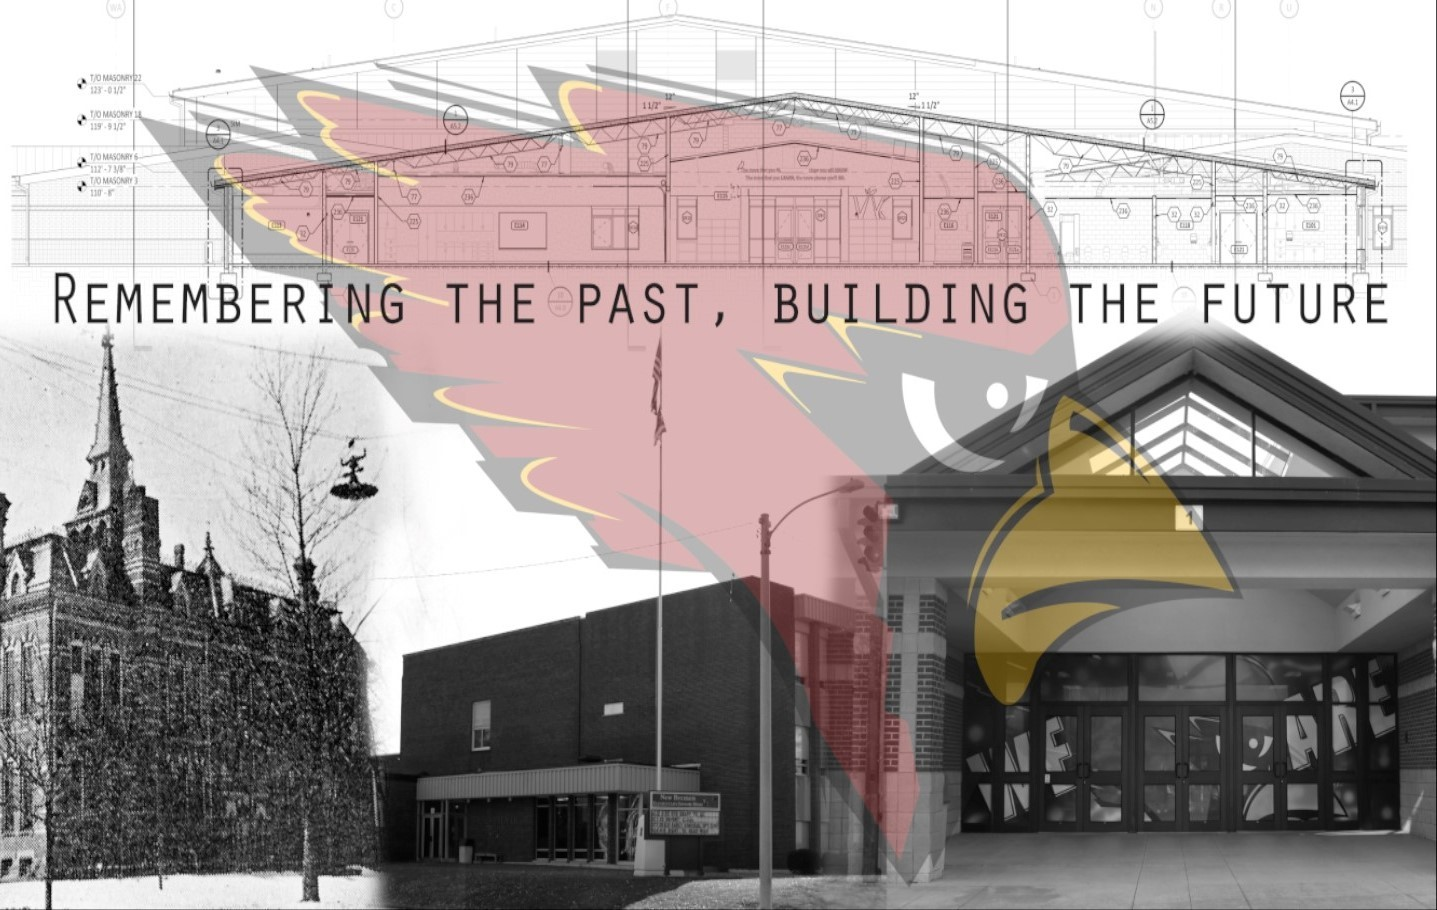 Remembering the past - pictures of the school through the years